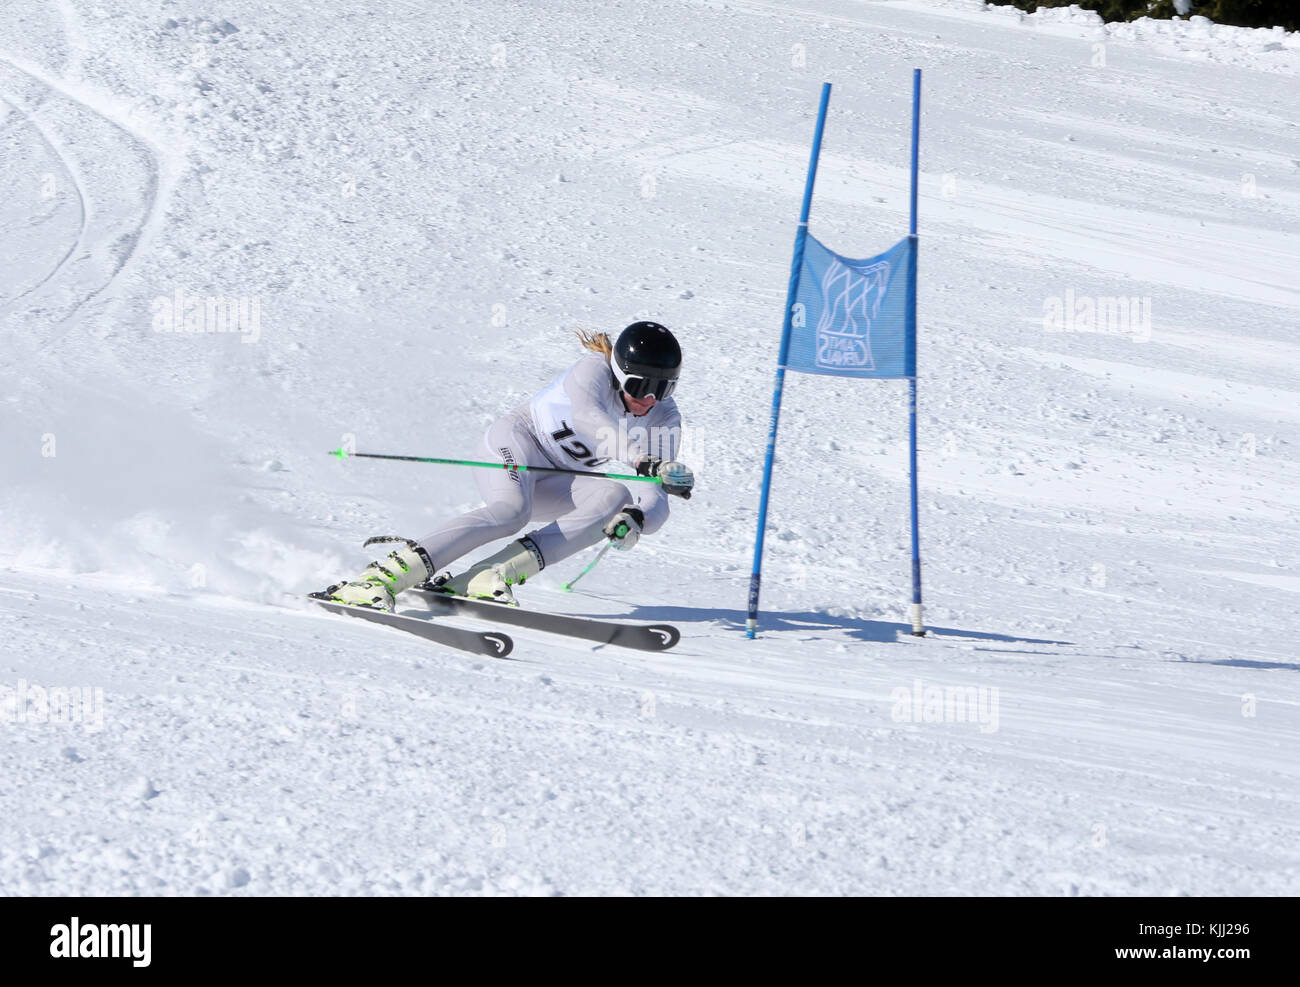 French Alps.  Giant Slalom skier rounds gate at high speed.  France. - Stock Image